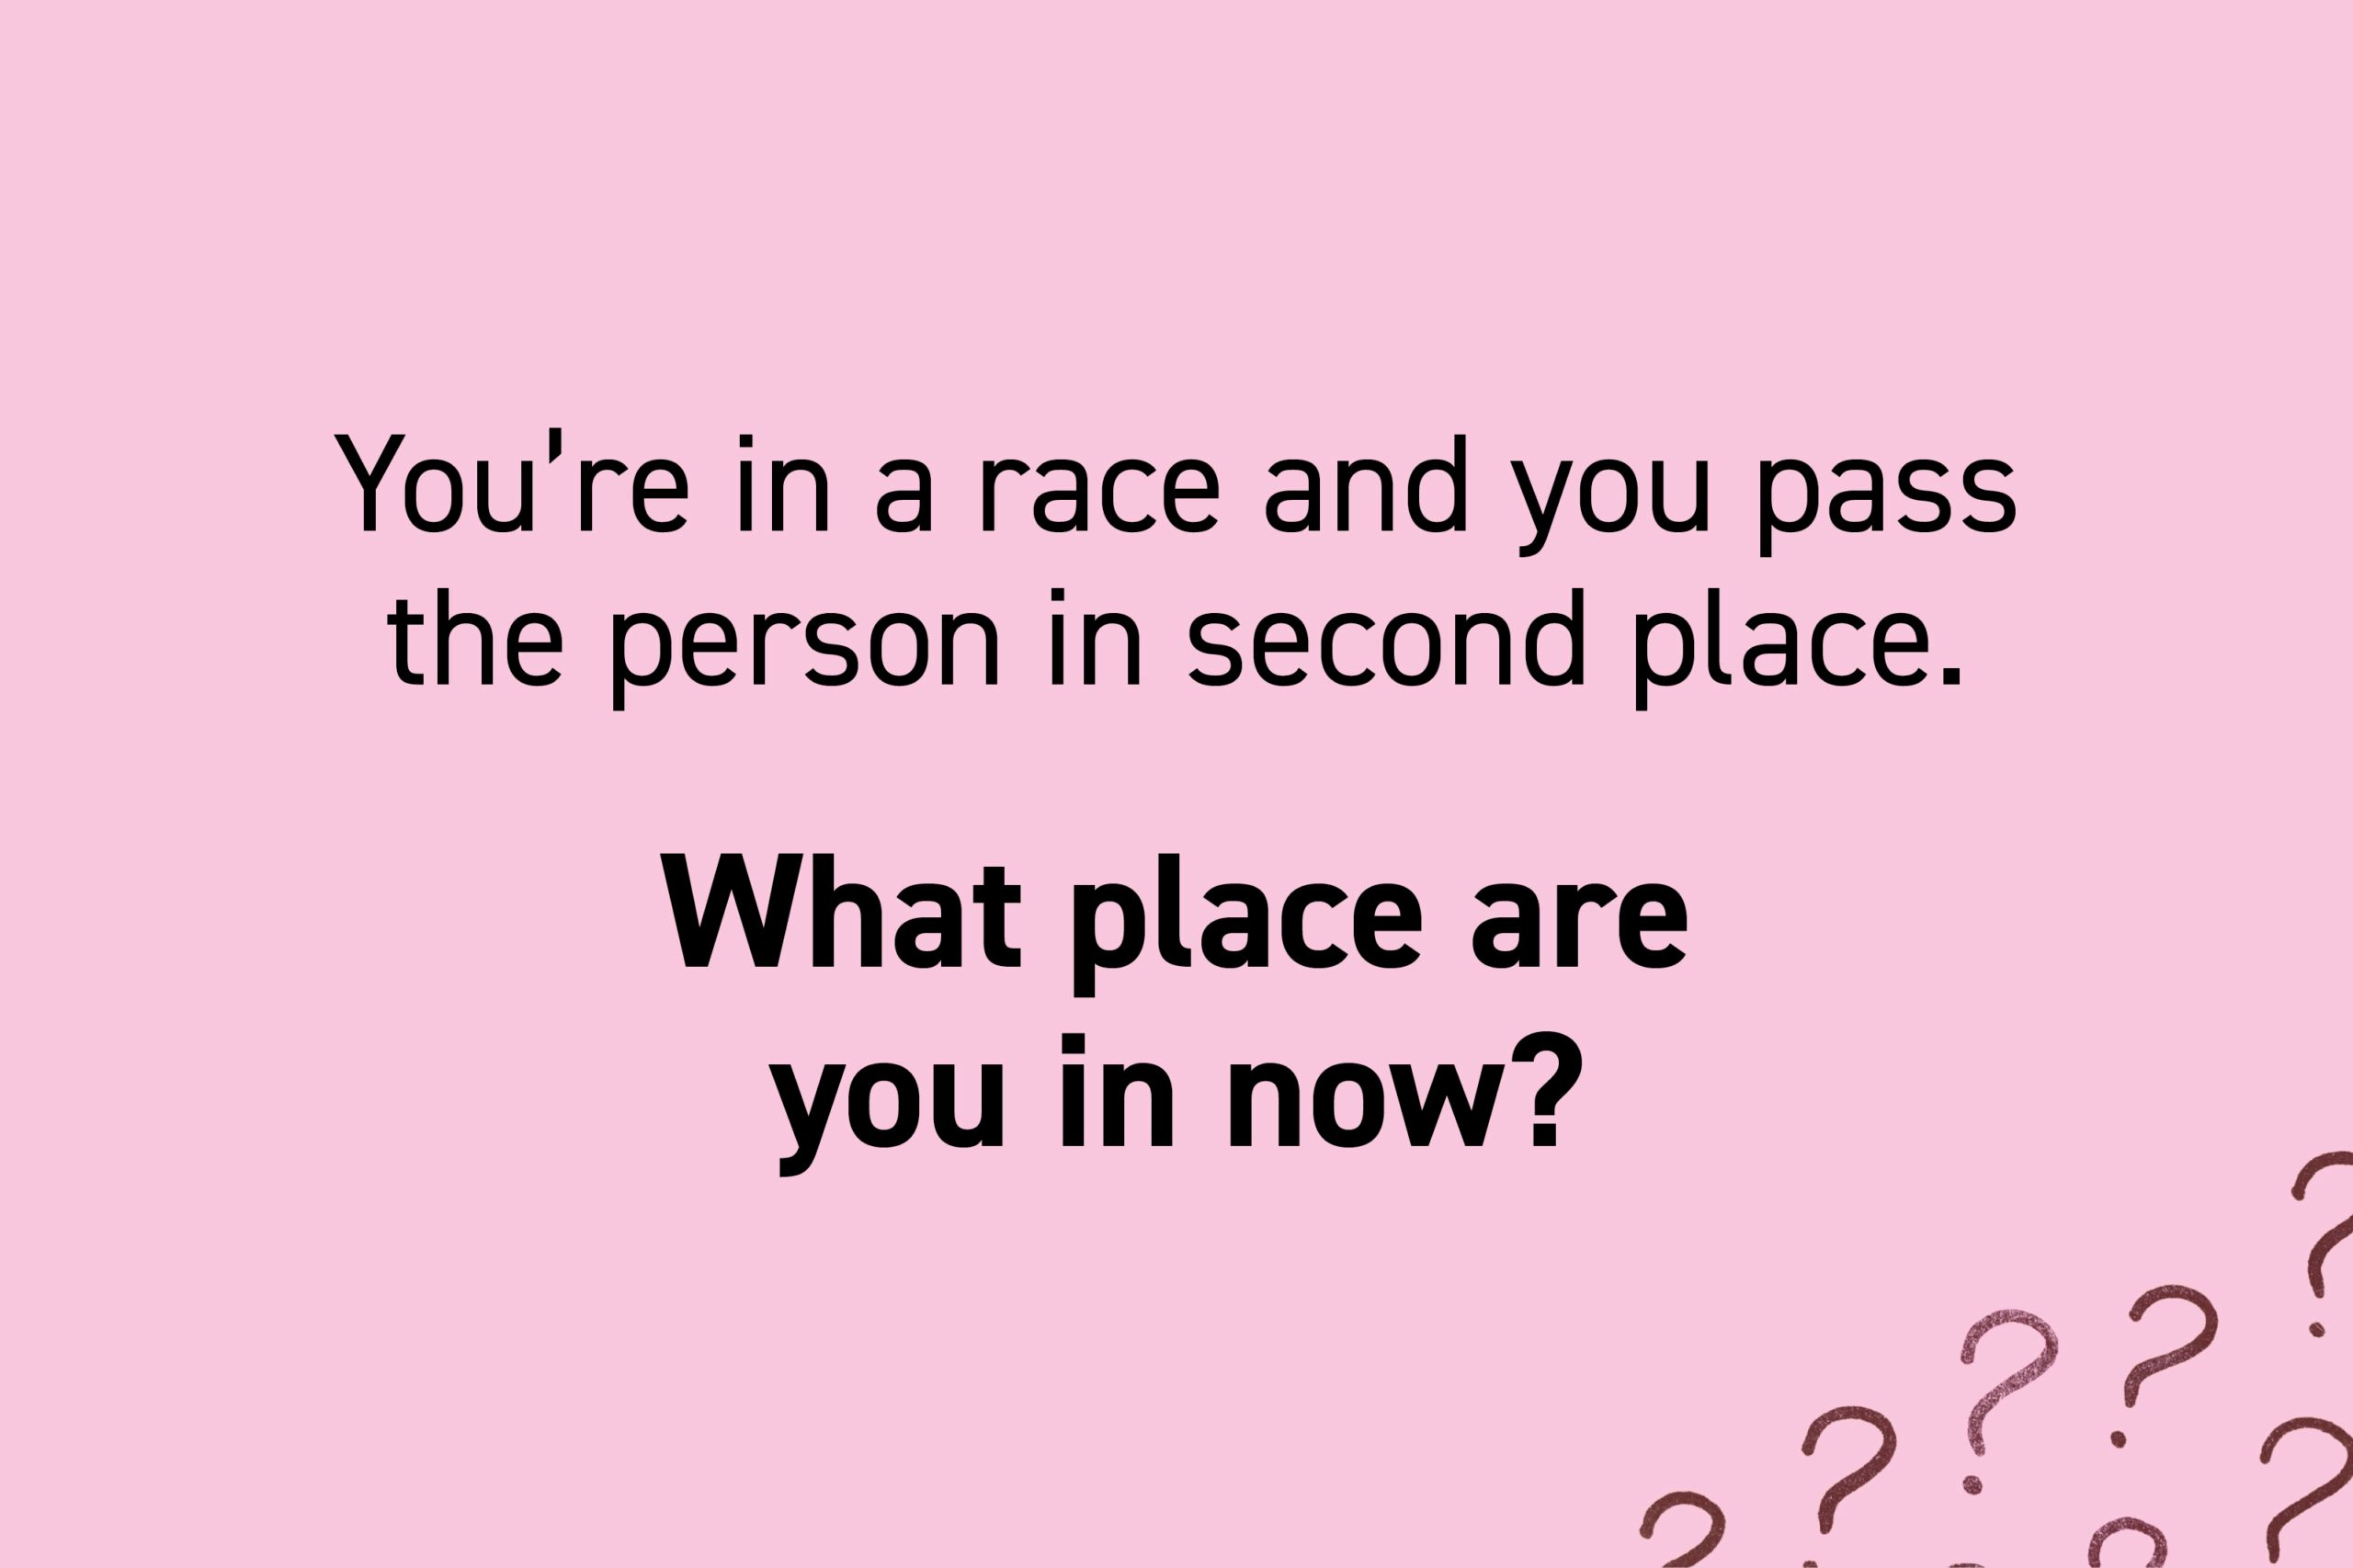 You're in a race and you pass the person in second place. What place are you in now?